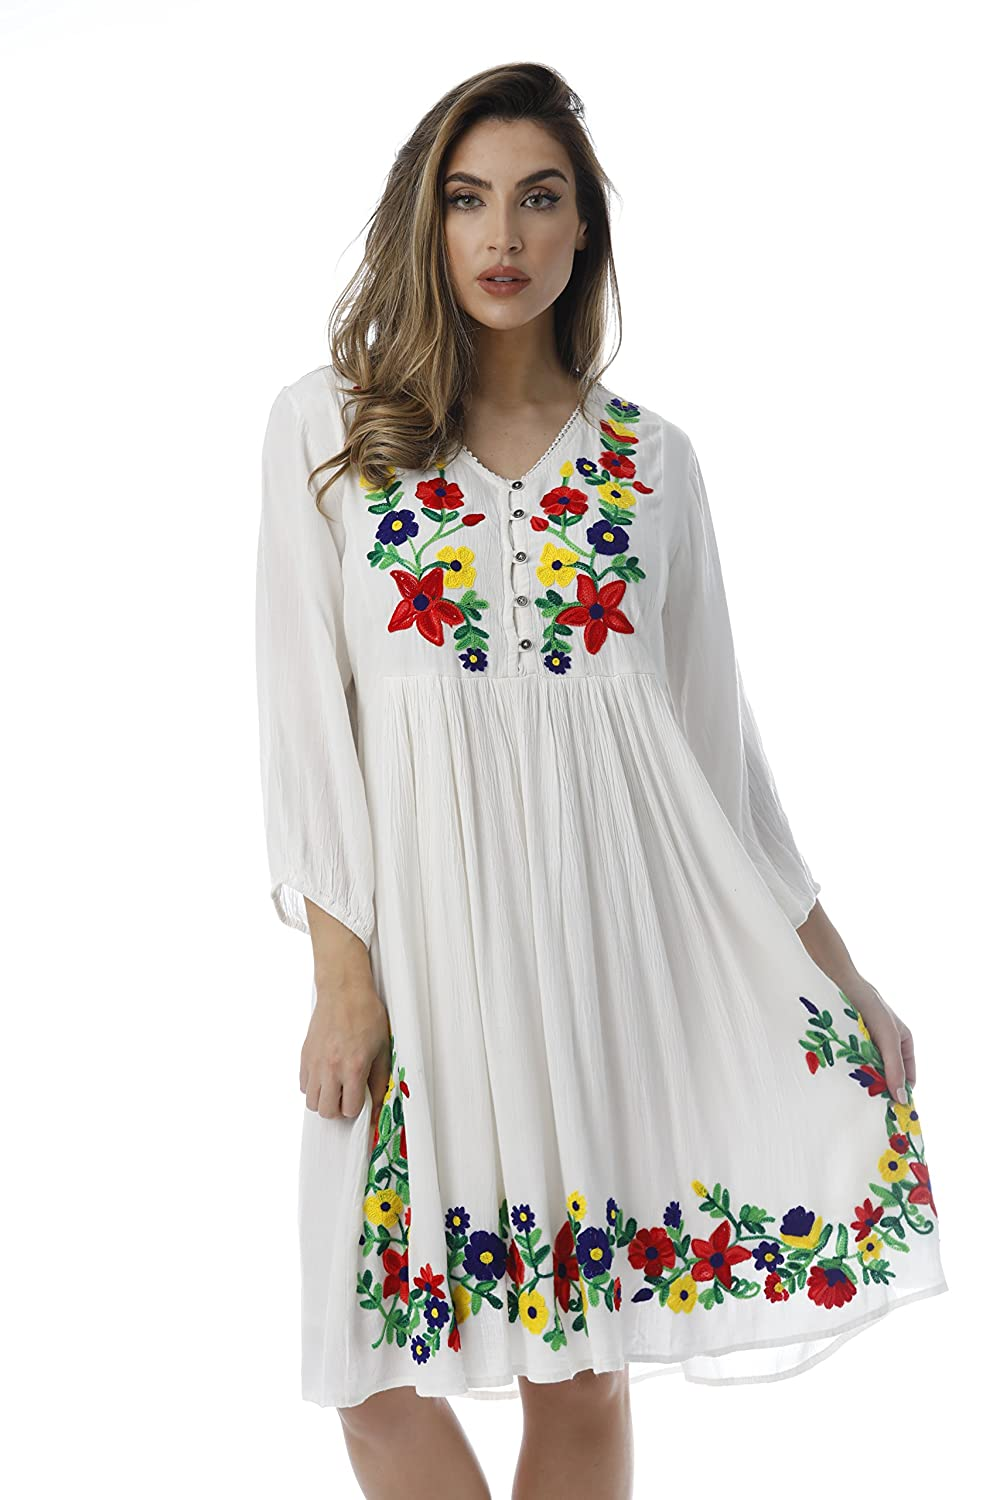 500 Vintage Style Dresses for Sale | Vintage Inspired Dresses Riviera Sun Floral Embroidered 3/4 Sleeve Button Front Empire Waist Dress $29.99 AT vintagedancer.com